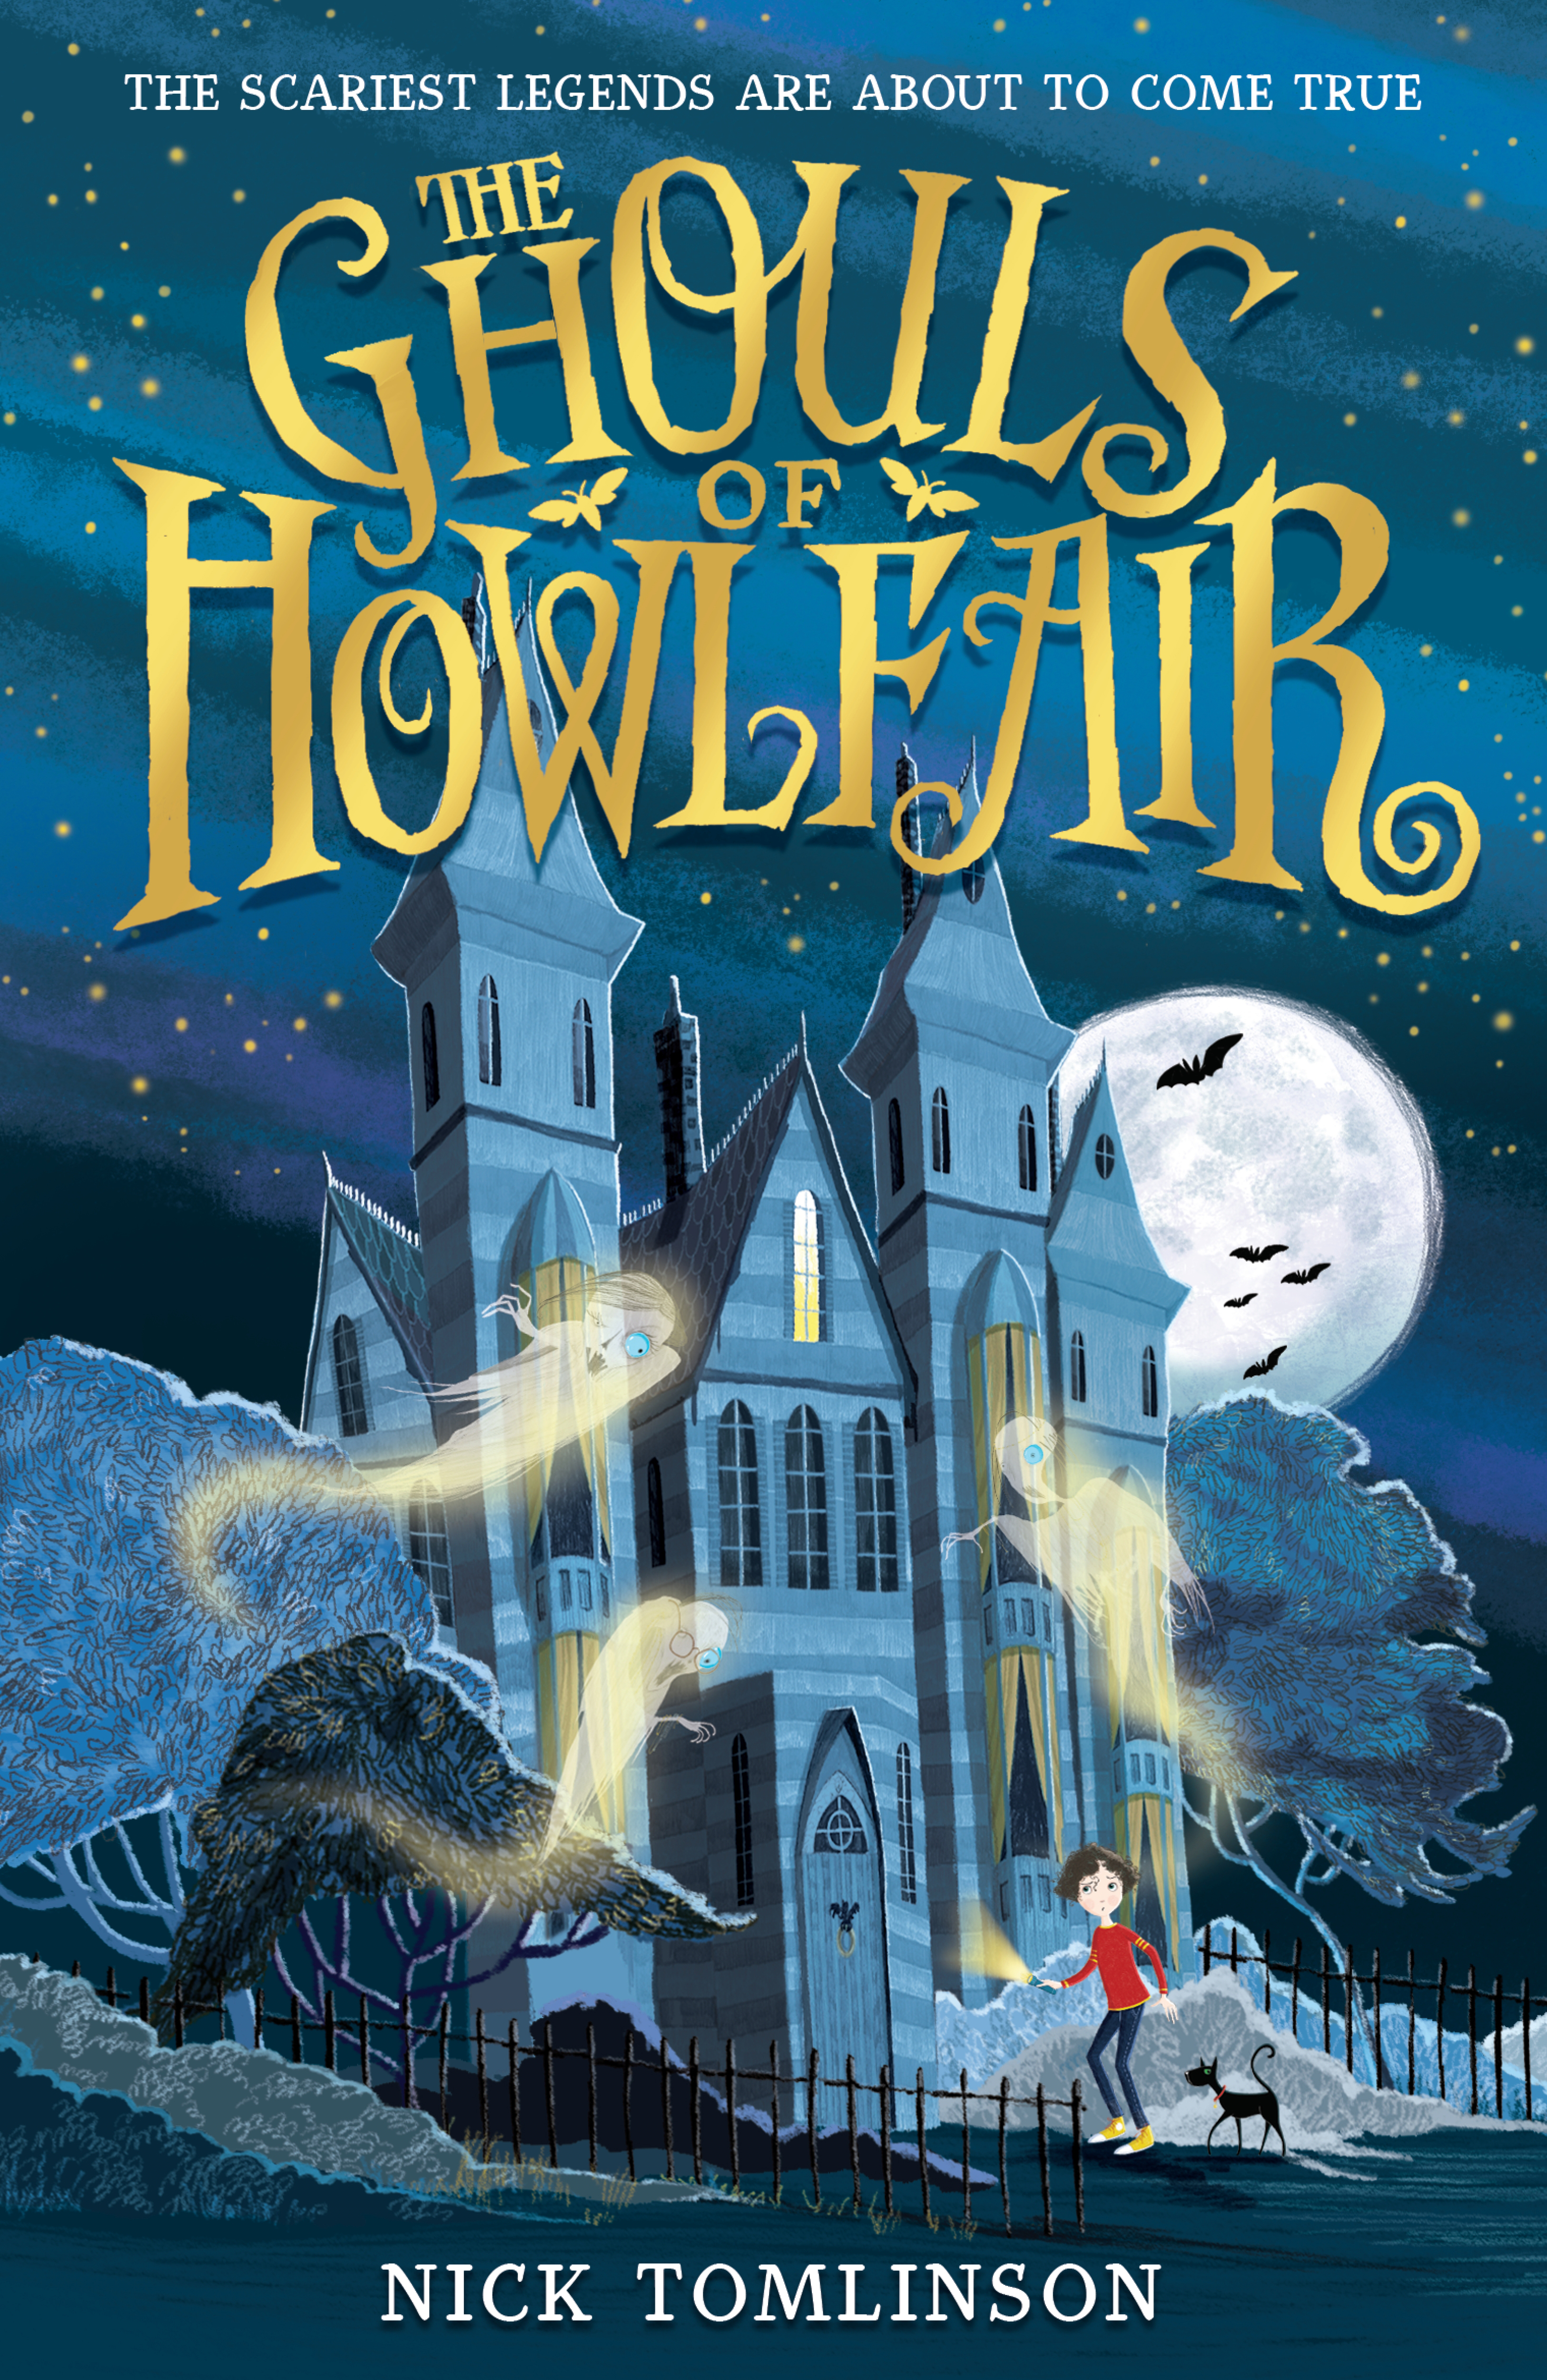 The Ghouls of Howlfair | Nick Tomlinson (cover artwork by Kim Geyer)